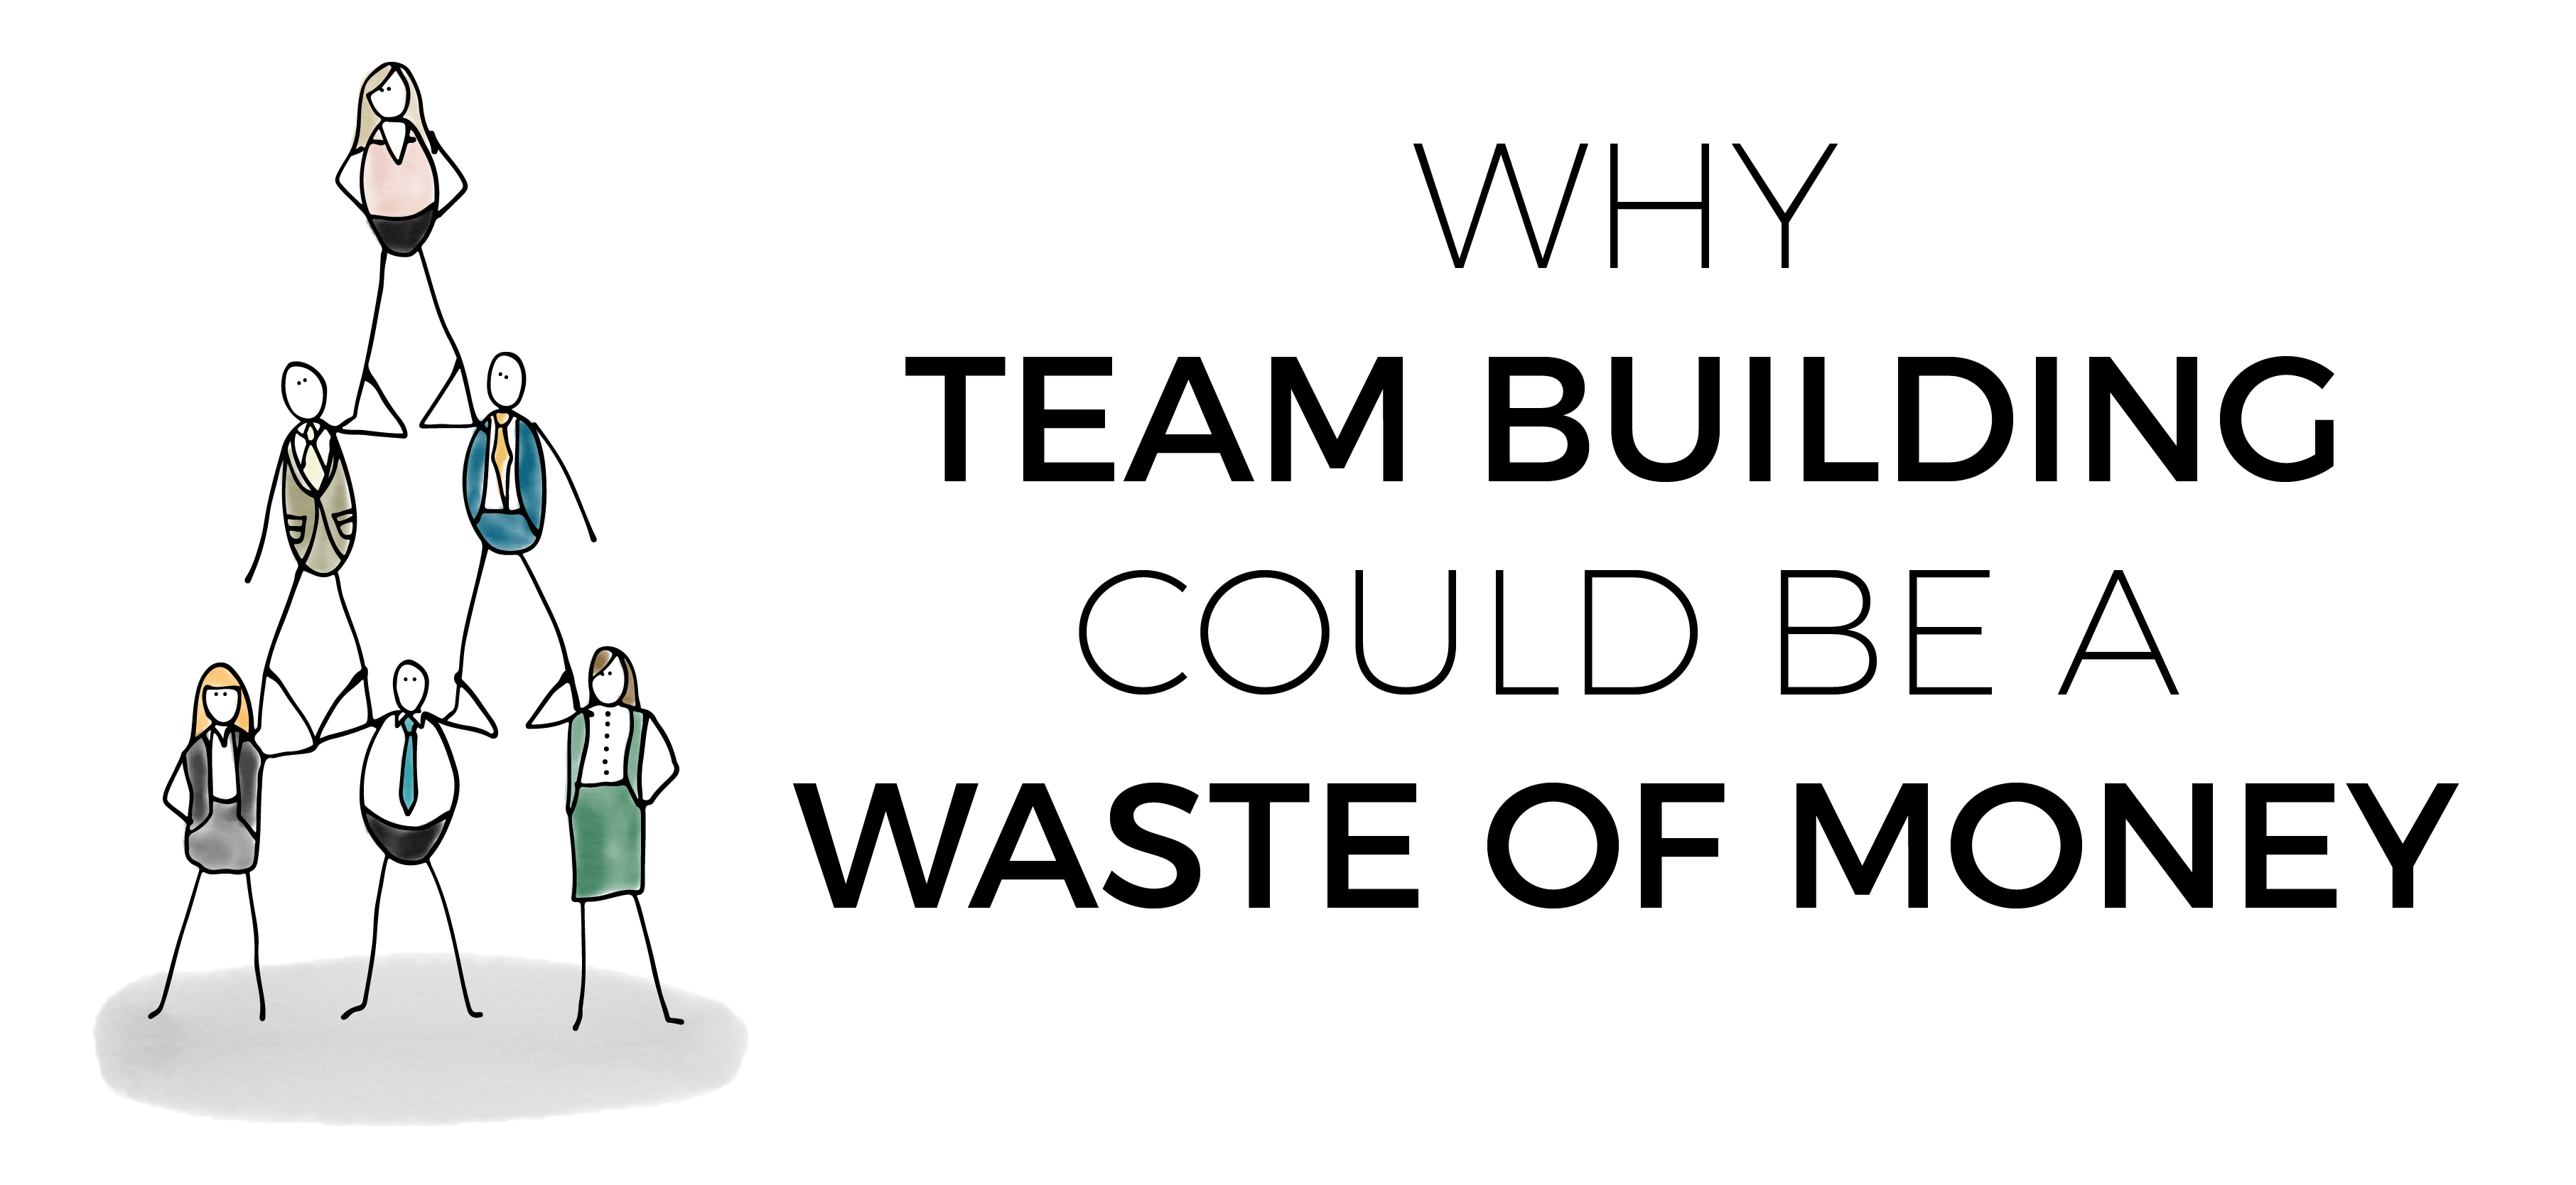 Why Team Building Could be a Waste of Money